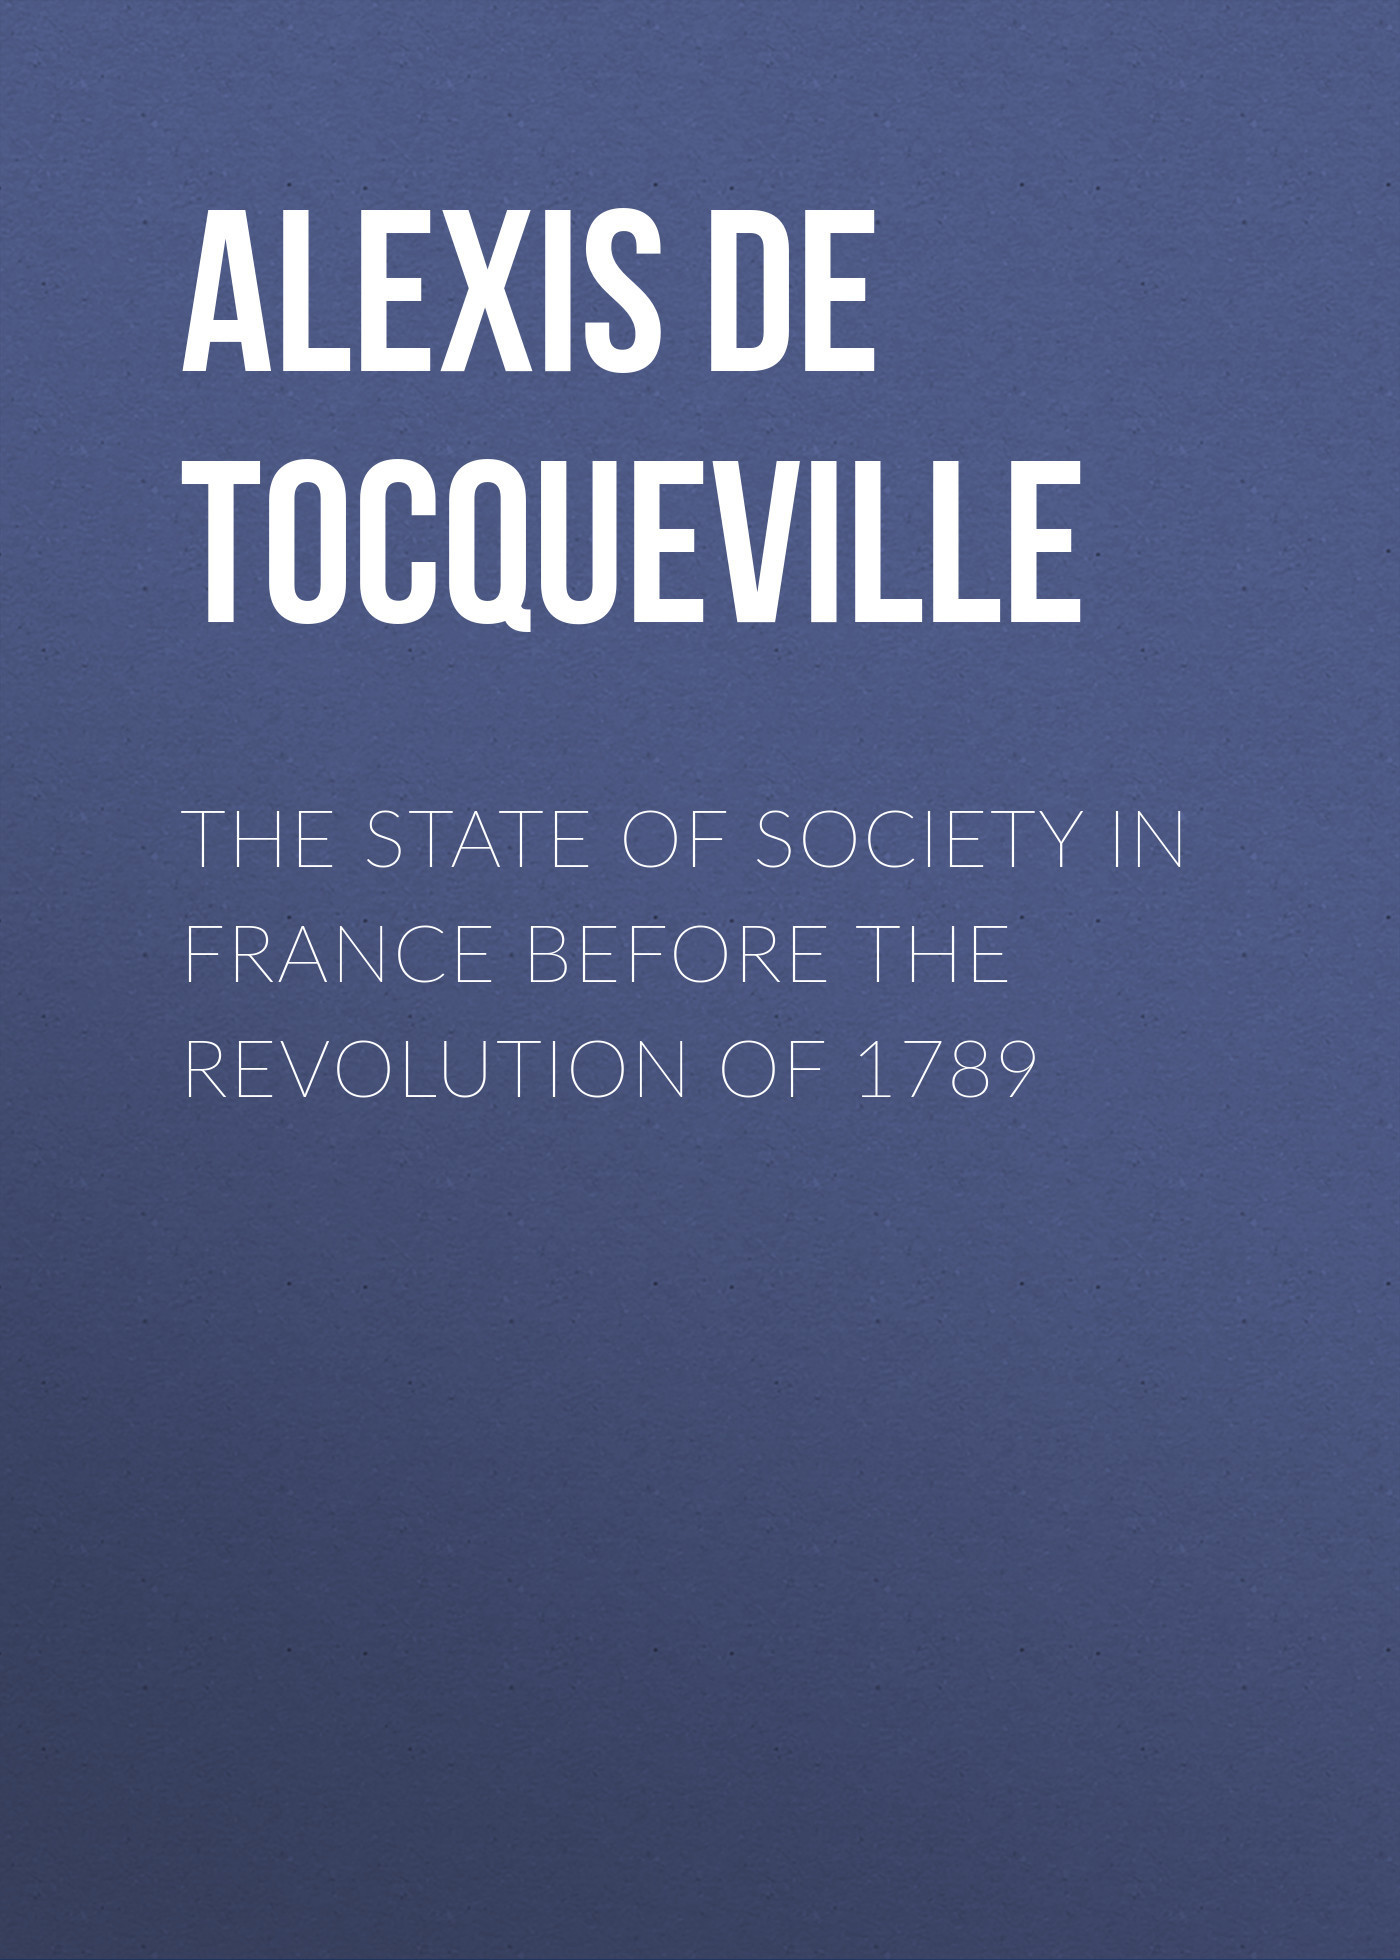 Alexis de Tocqueville The State of Society in France Before the Revolution of 1789 the night before easter